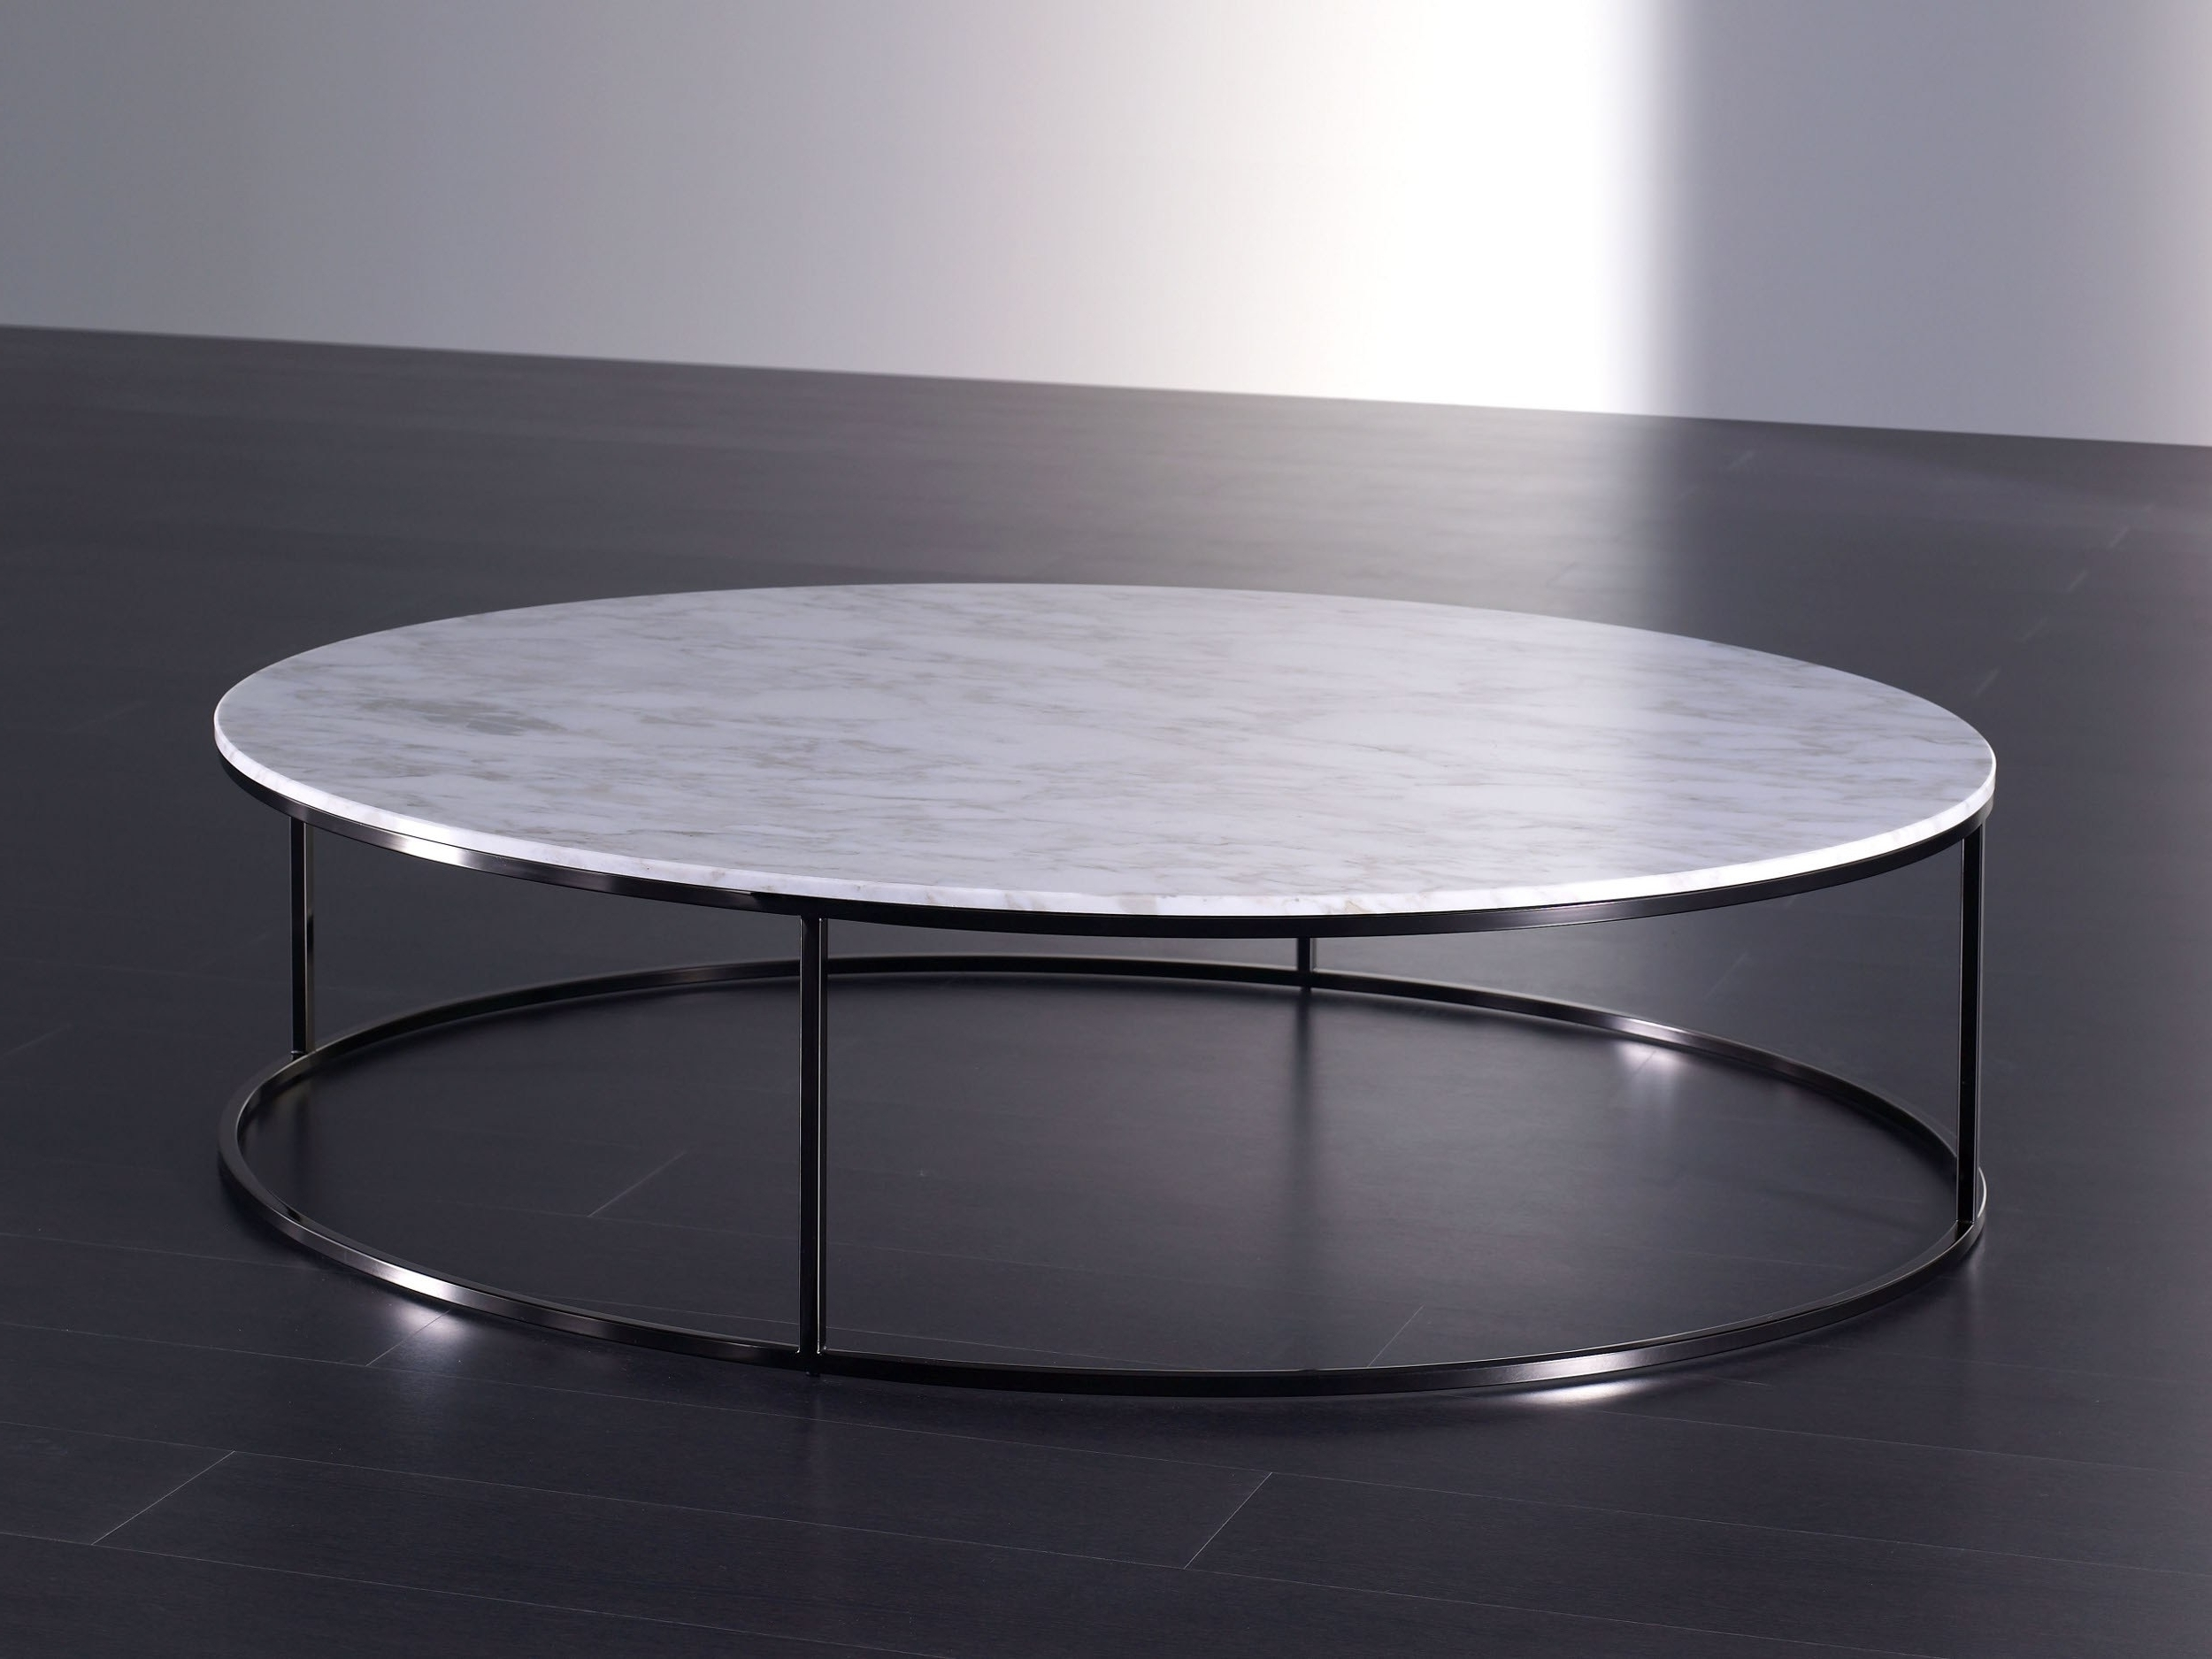 Most Recent Iron Marble Coffee Tables Regarding Choose The Best White Marble Coffee Table — The Home Redesign (View 13 of 20)